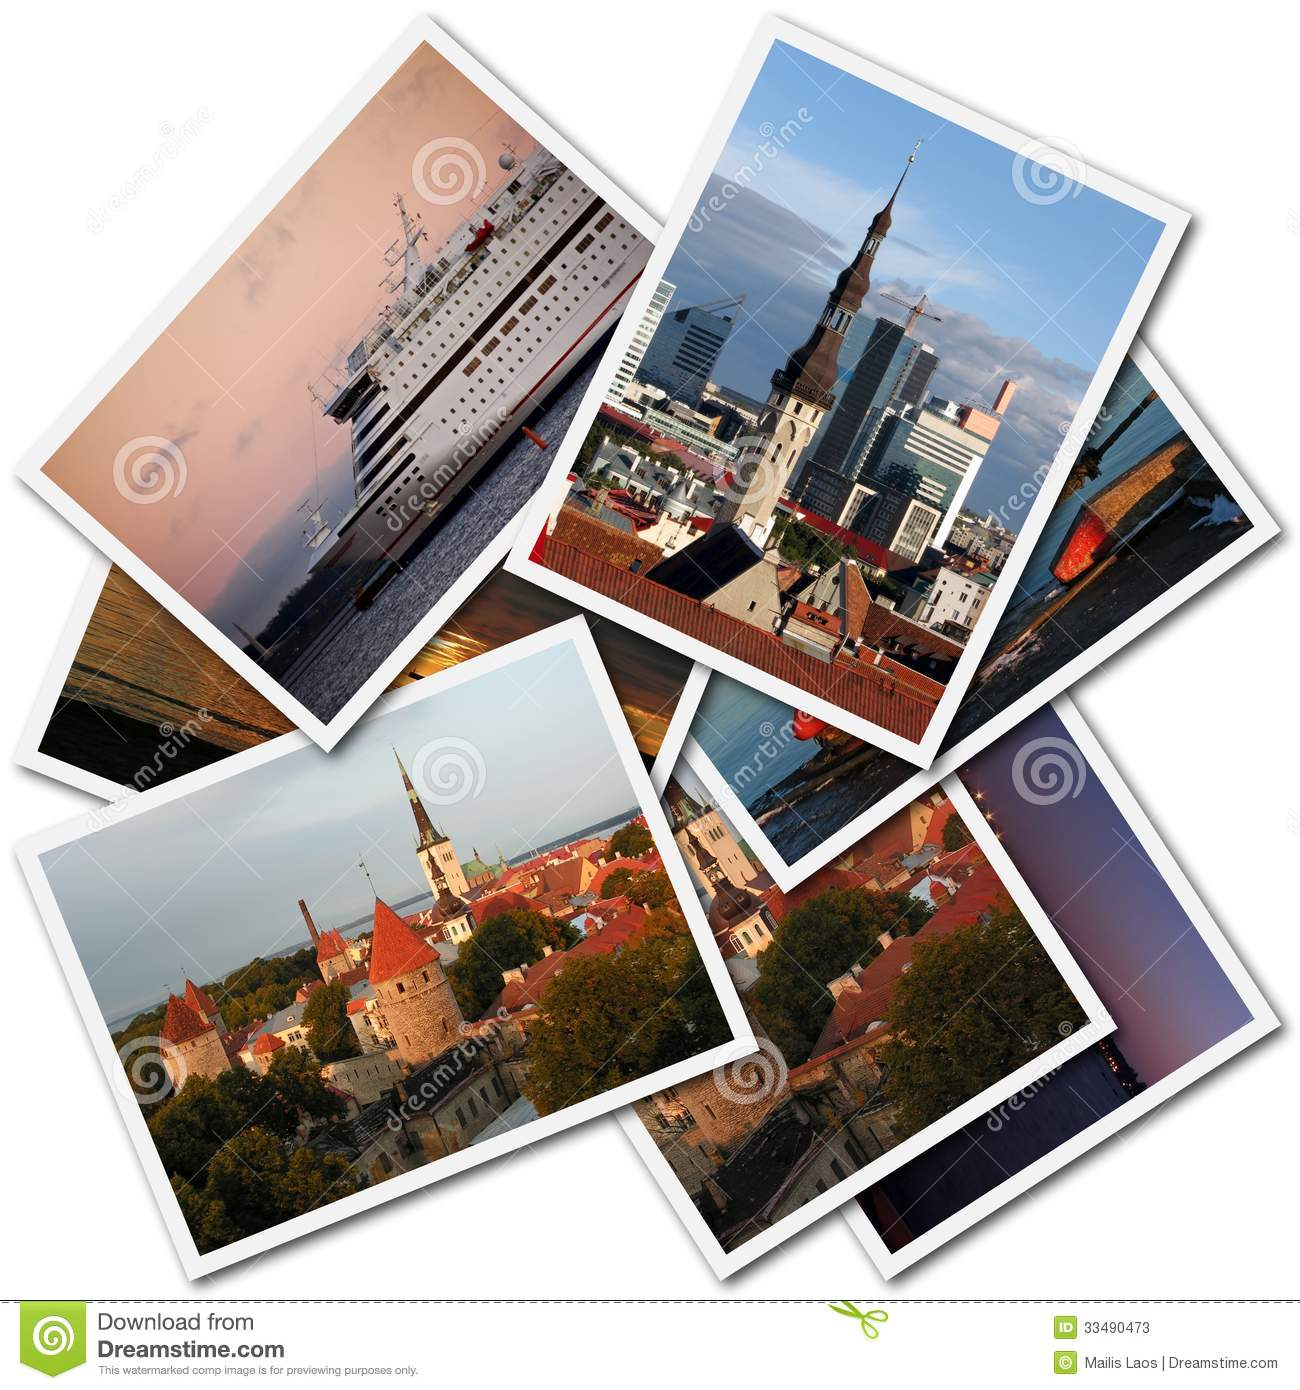 Download Tallinn Photos stock image. Image of images, selection - 33490473